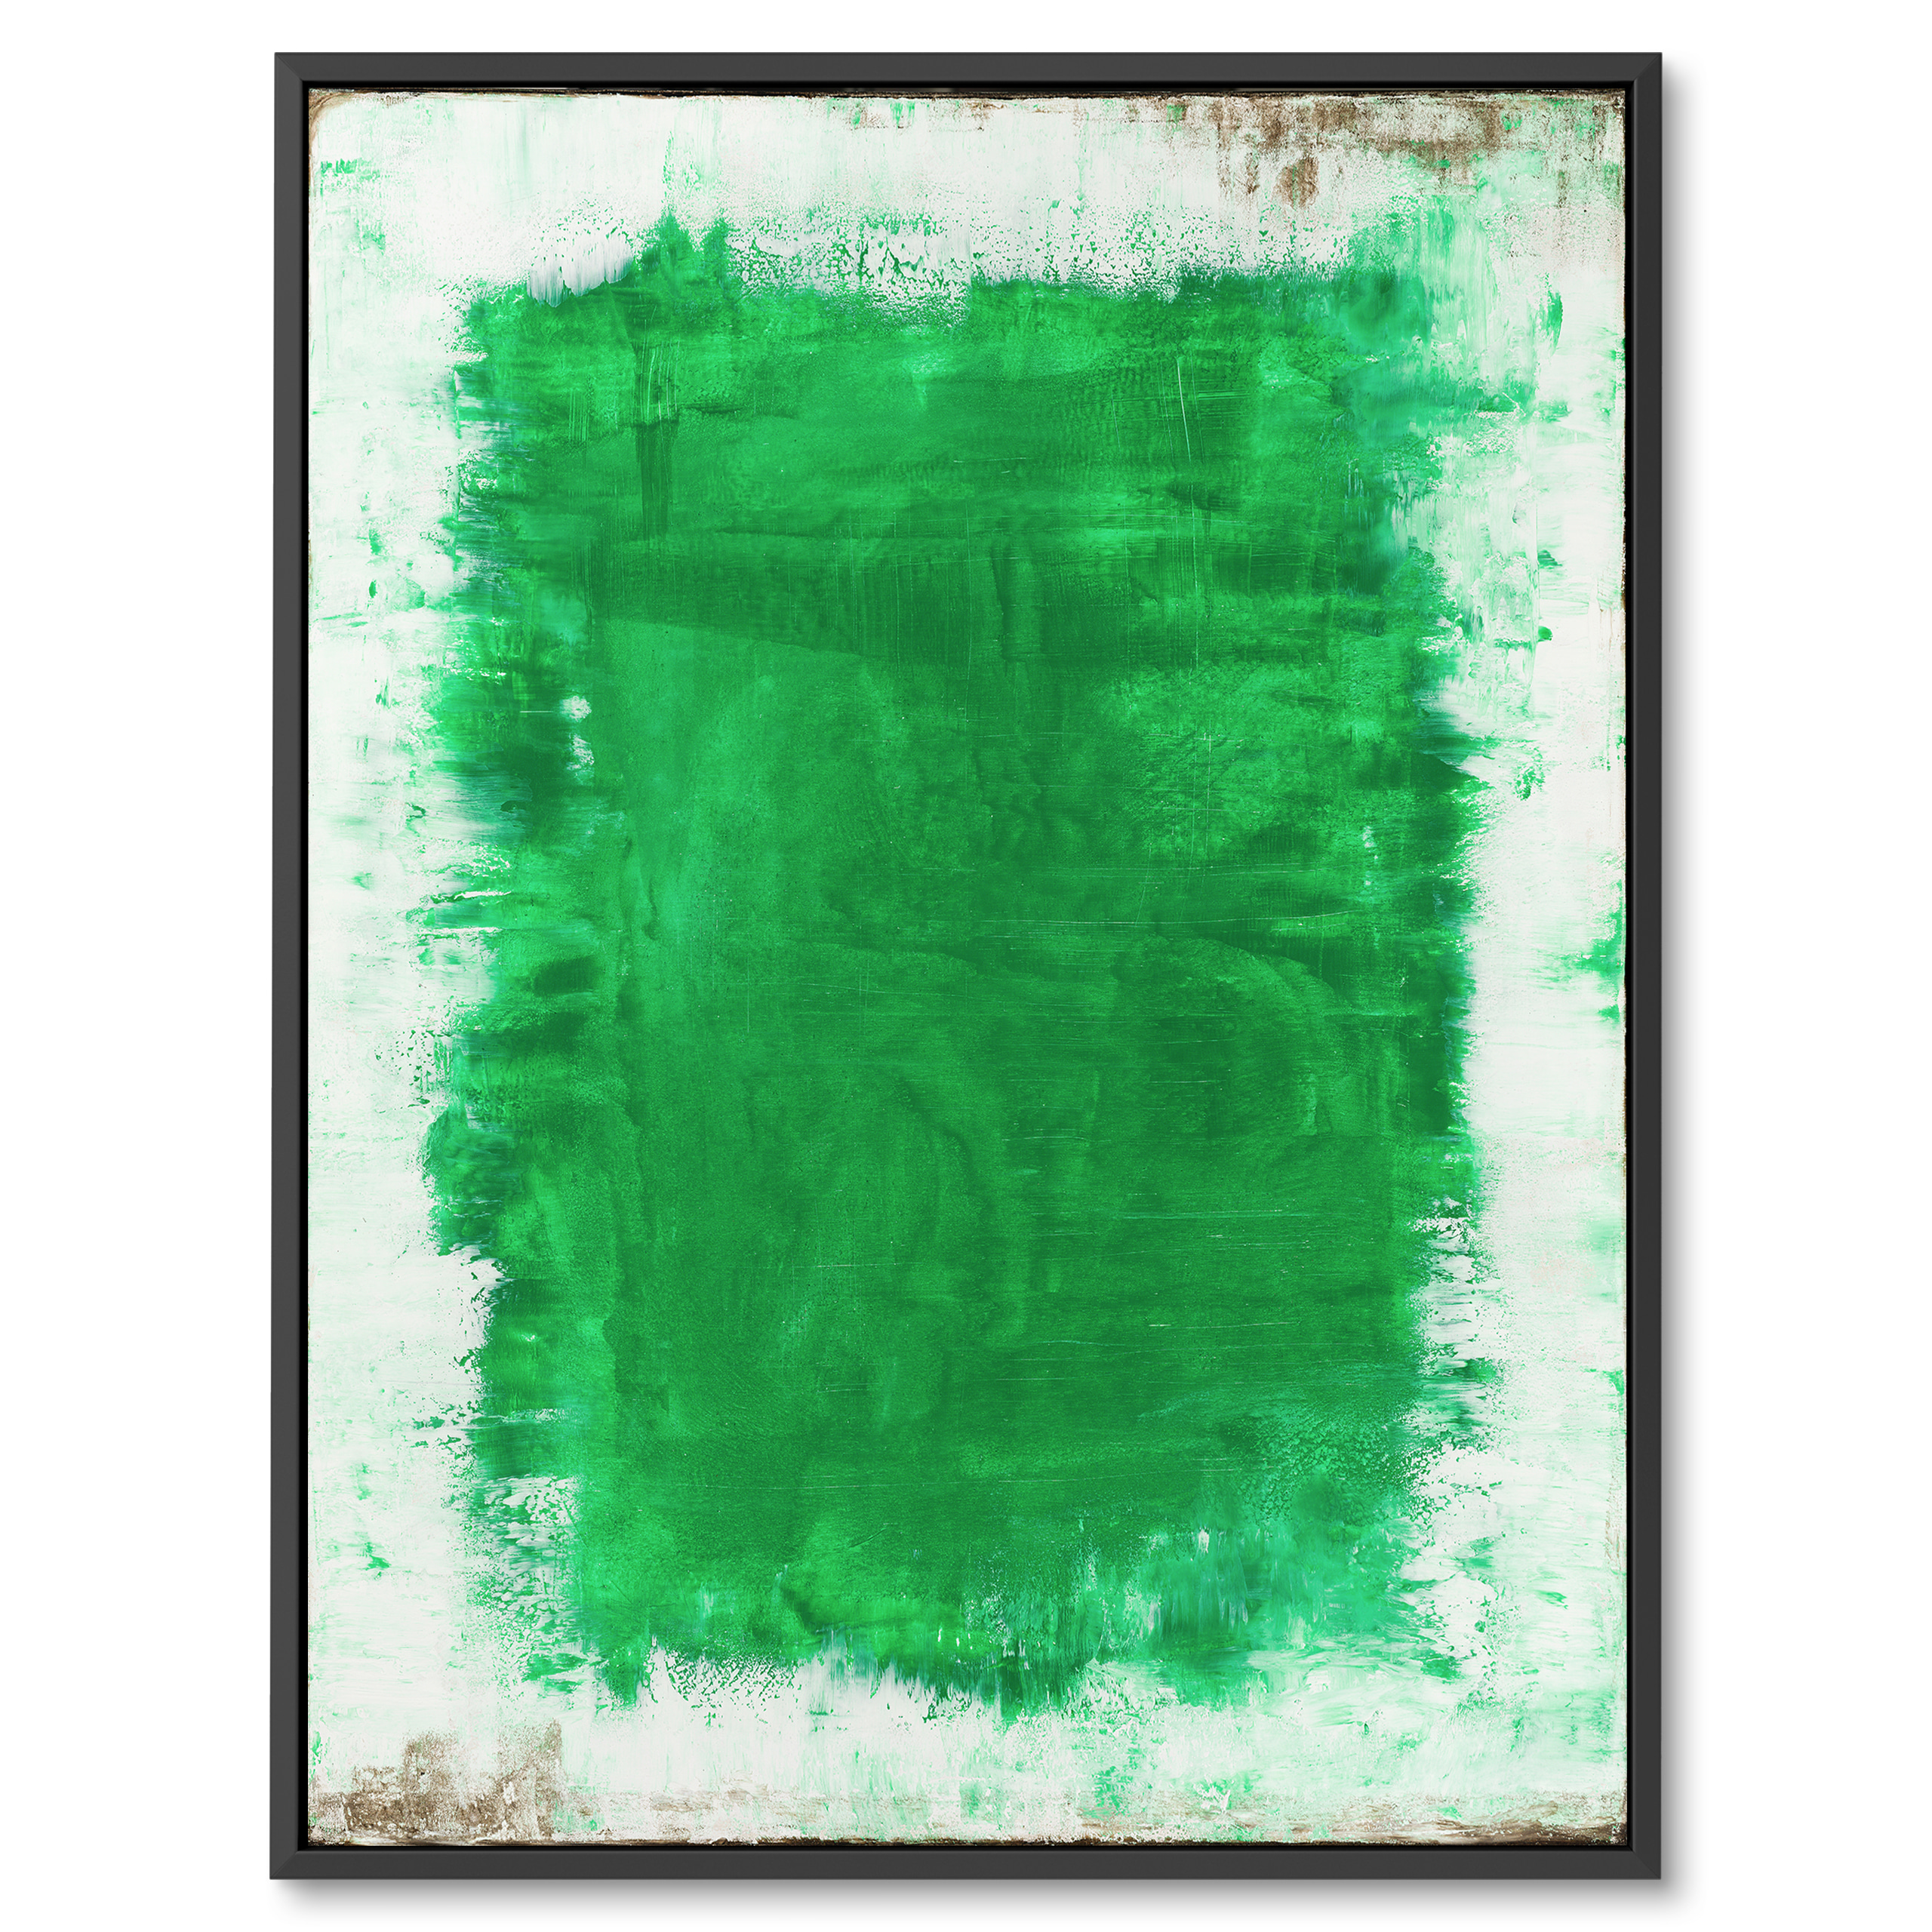 Modern contemporary abstract art on canvas framed, White and green, Green hole by Benny Moshe